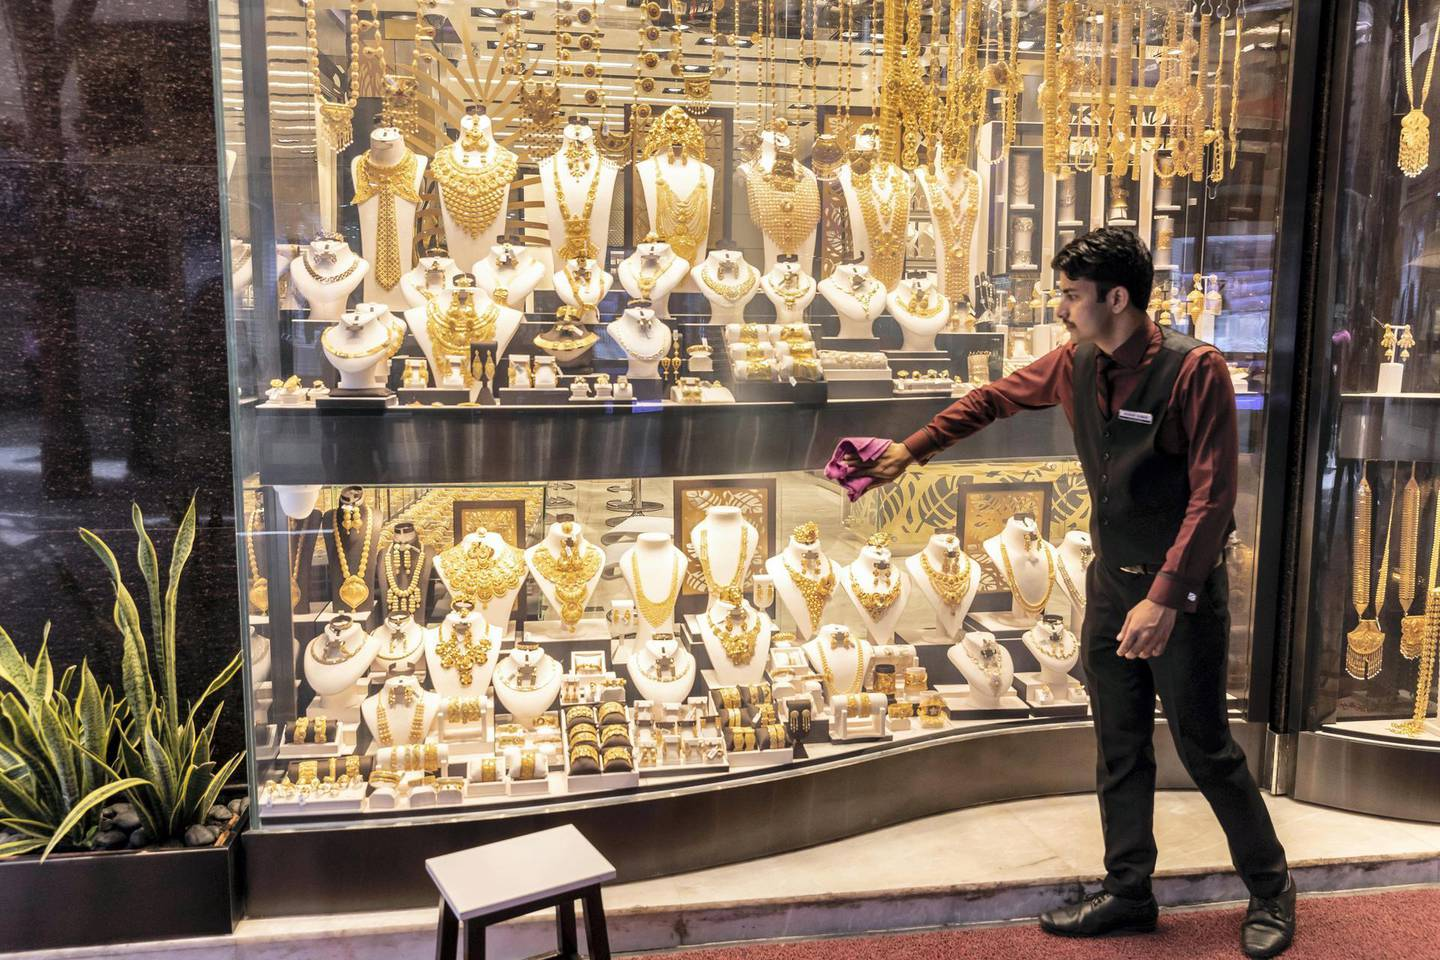 DUBAI, UNITED ARAB EMIRATES.  02 JULY 2018. The Gold Souk in Deira is due for an upgrade by the Munisipality. A man cleans a shop front window displaying gold jewellery. (Photo: Antonie Robertson/The National) Journalist: Anam Rizvi. Section: National.